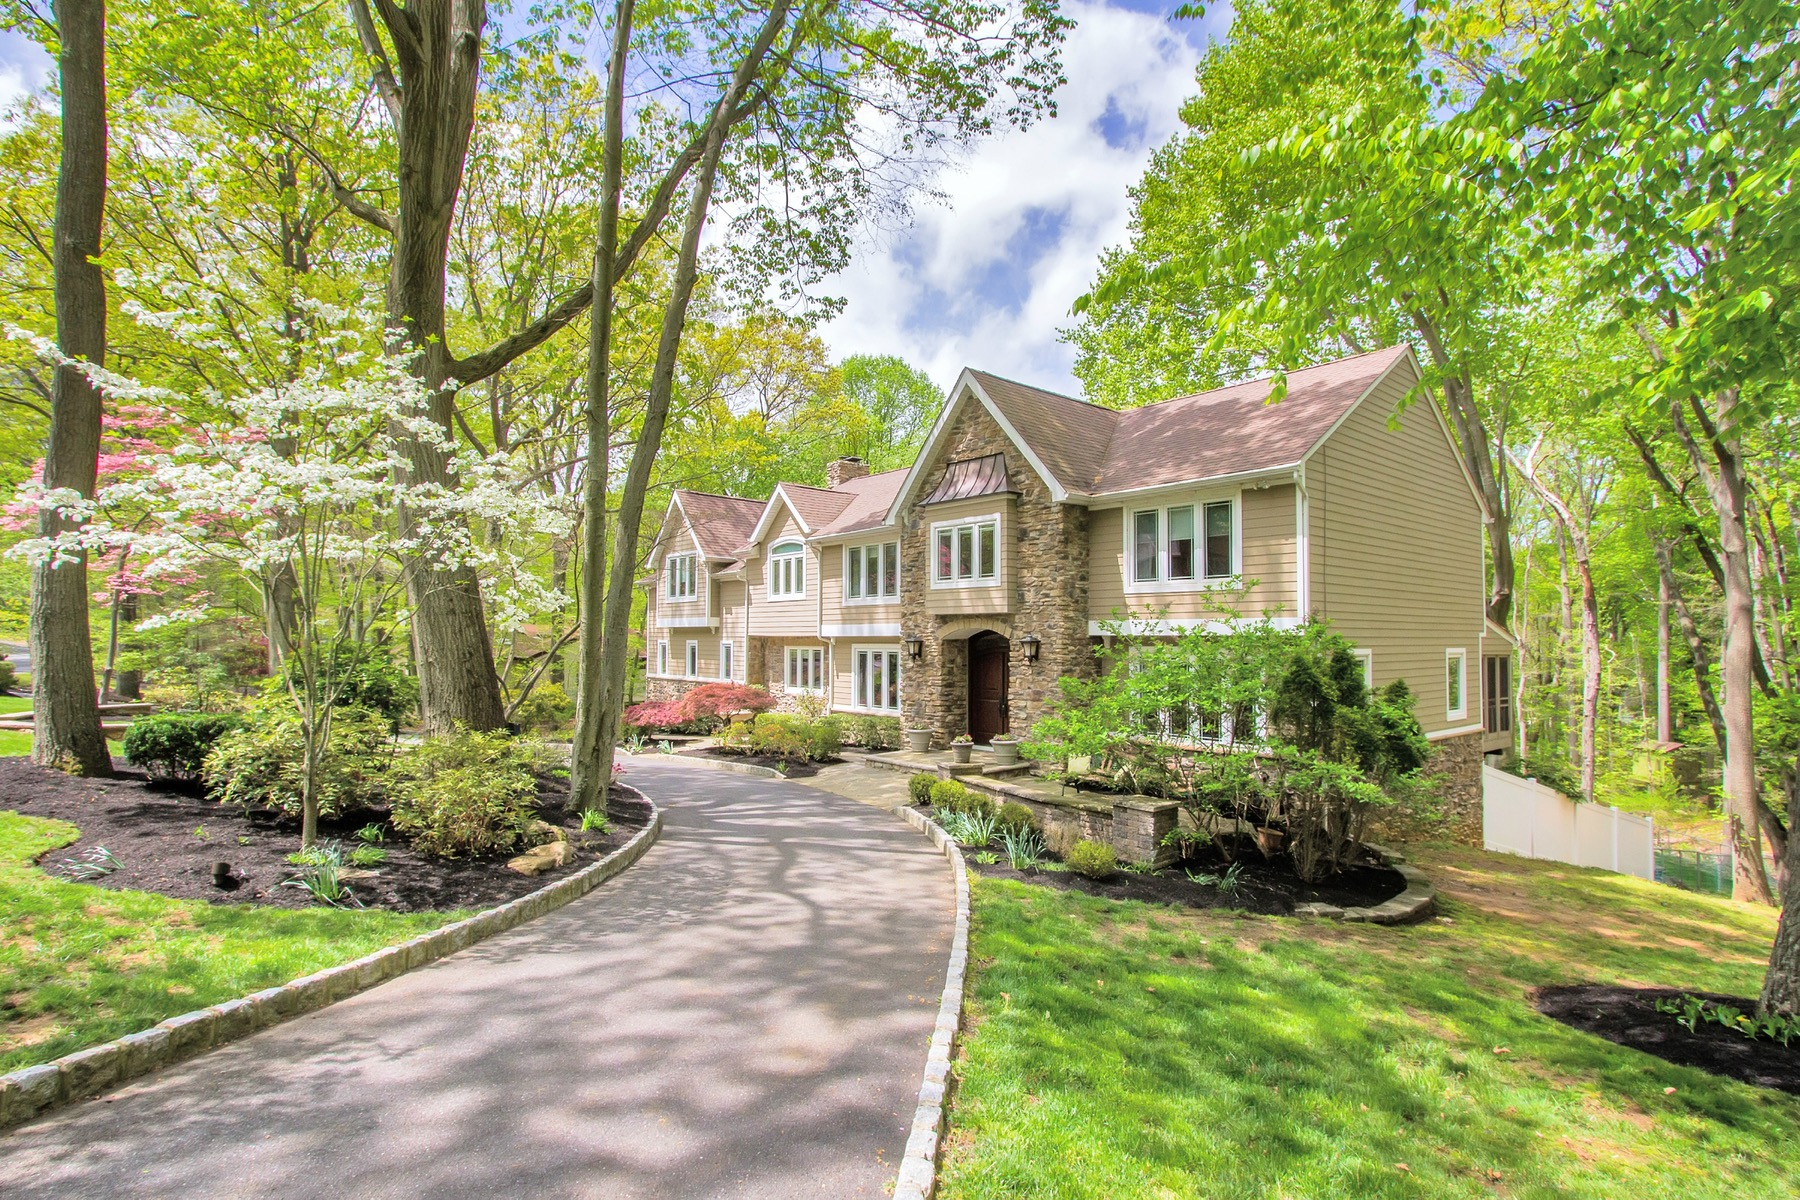 Single Family Home for Sale at Extensively Remodeled Custom Colonial 32 Seven Oaks Circle Holmdel, New Jersey 07733 United States